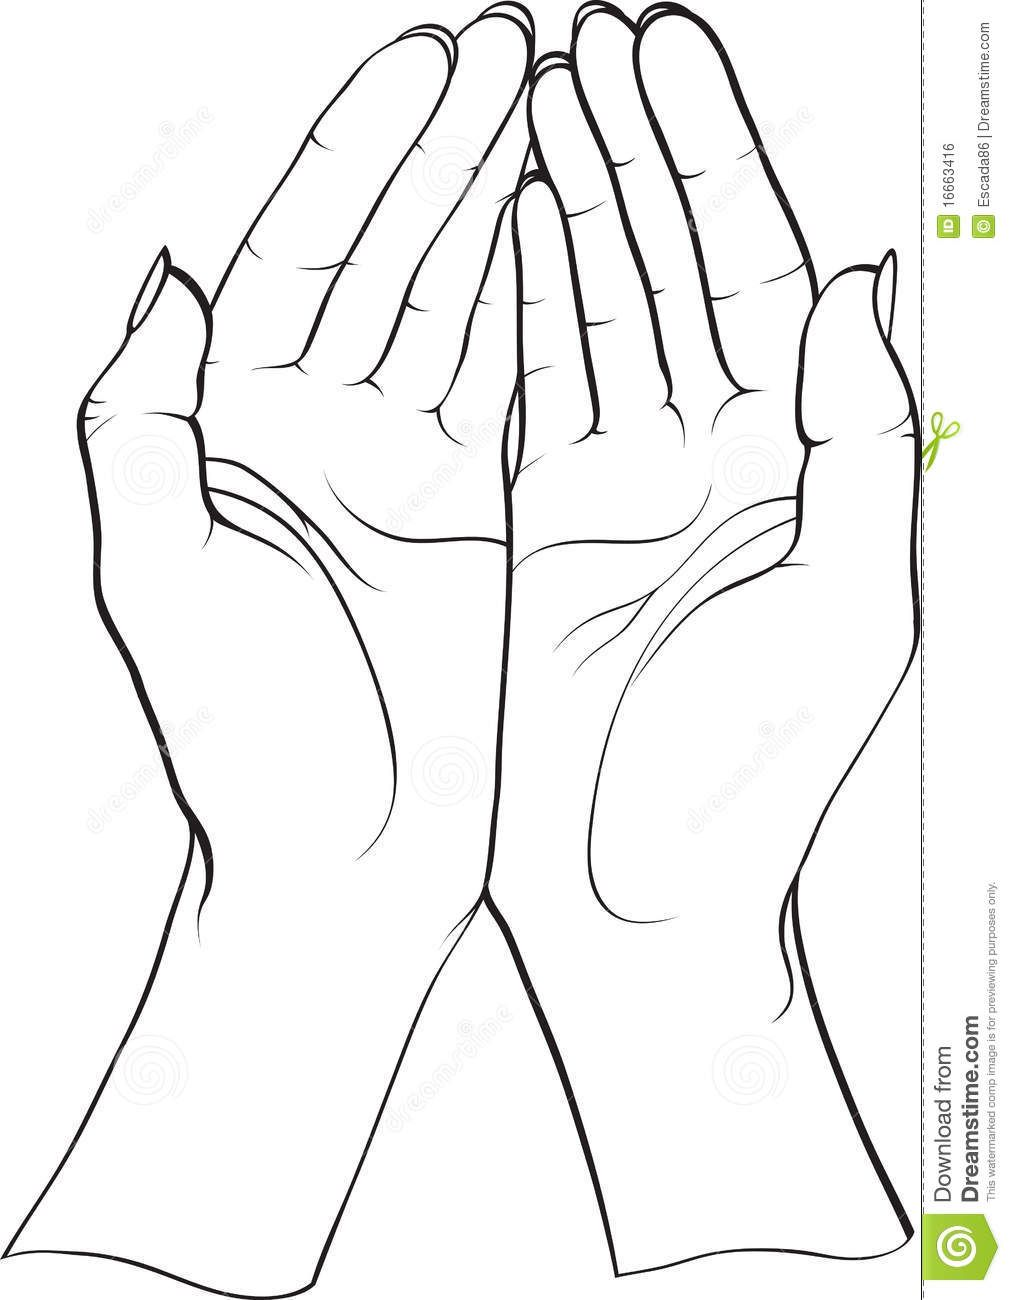 How to draw open cupped hands yahoo image search results